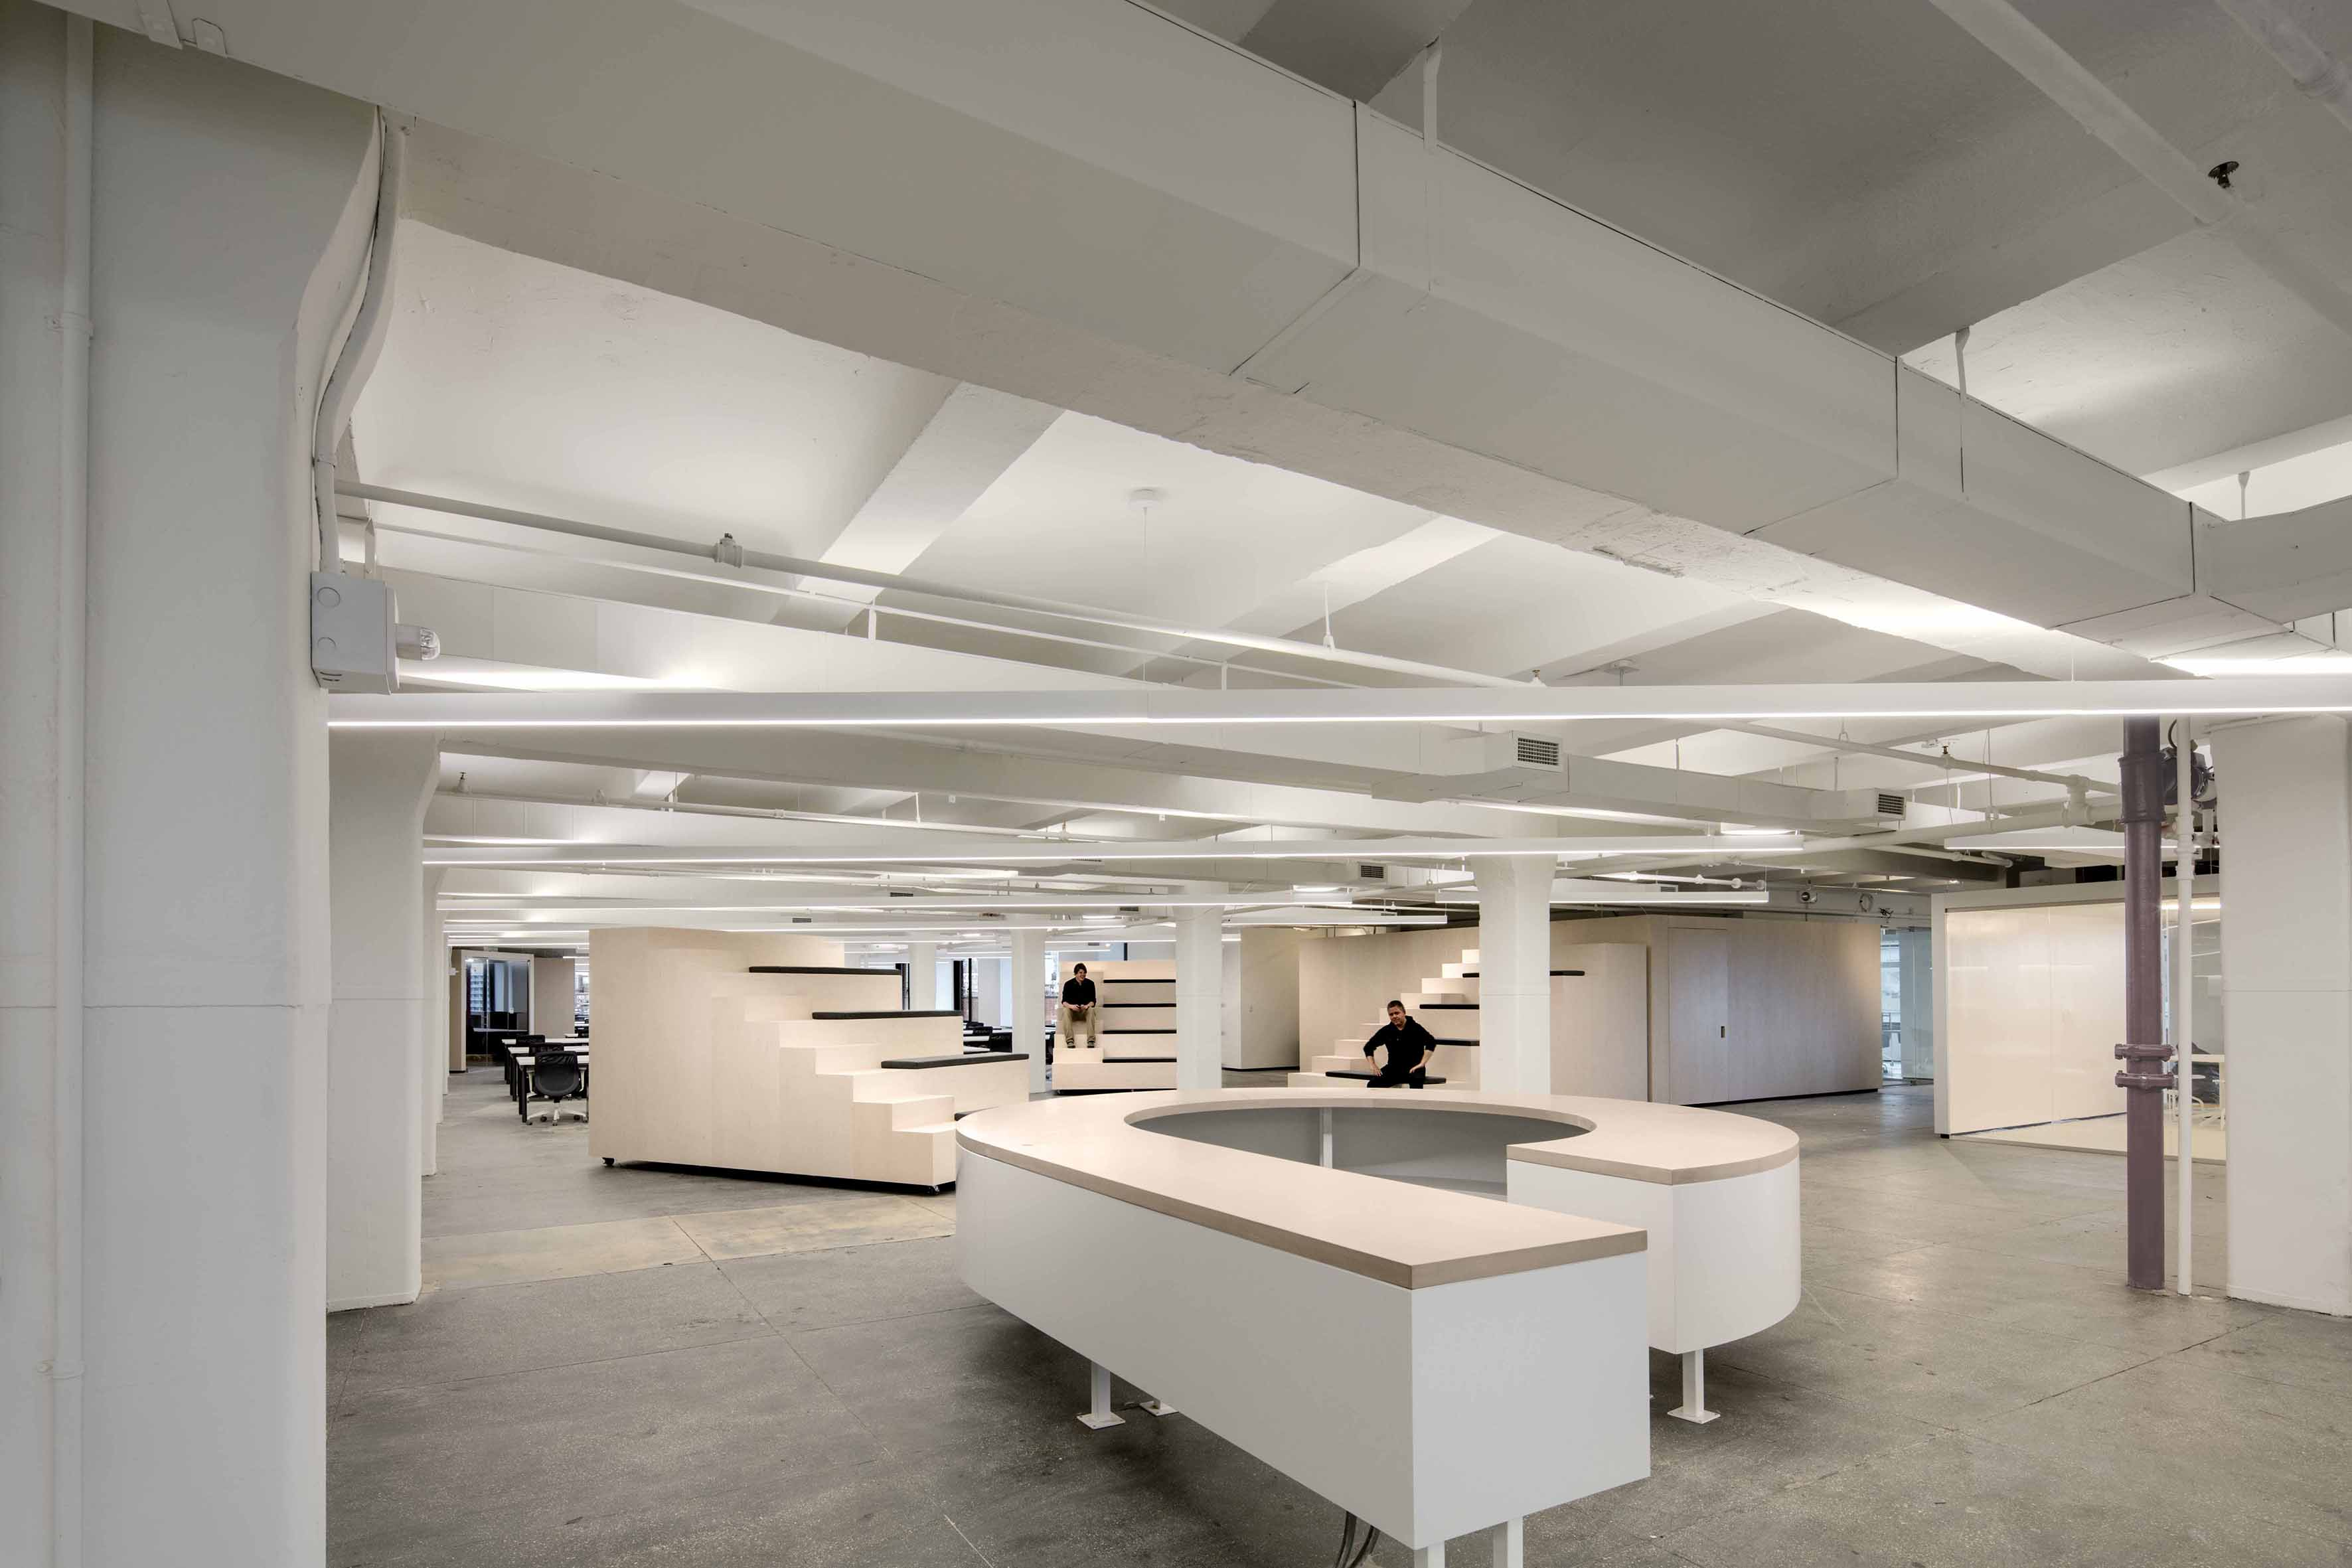 Holm architecture office hao holm architecture office is an